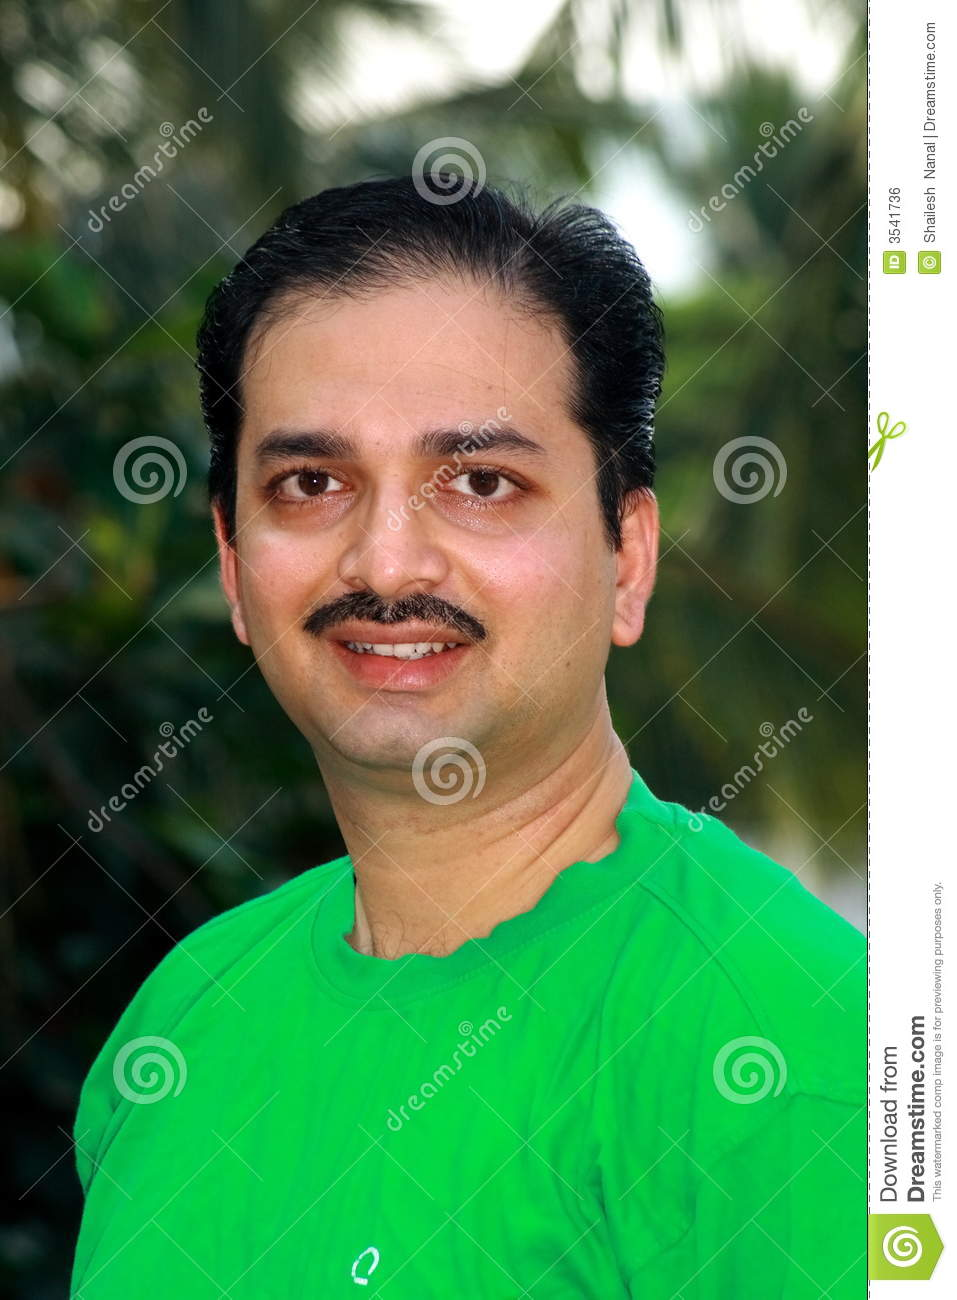 Handsome Person Royalty Free Stock Image Image 3541736